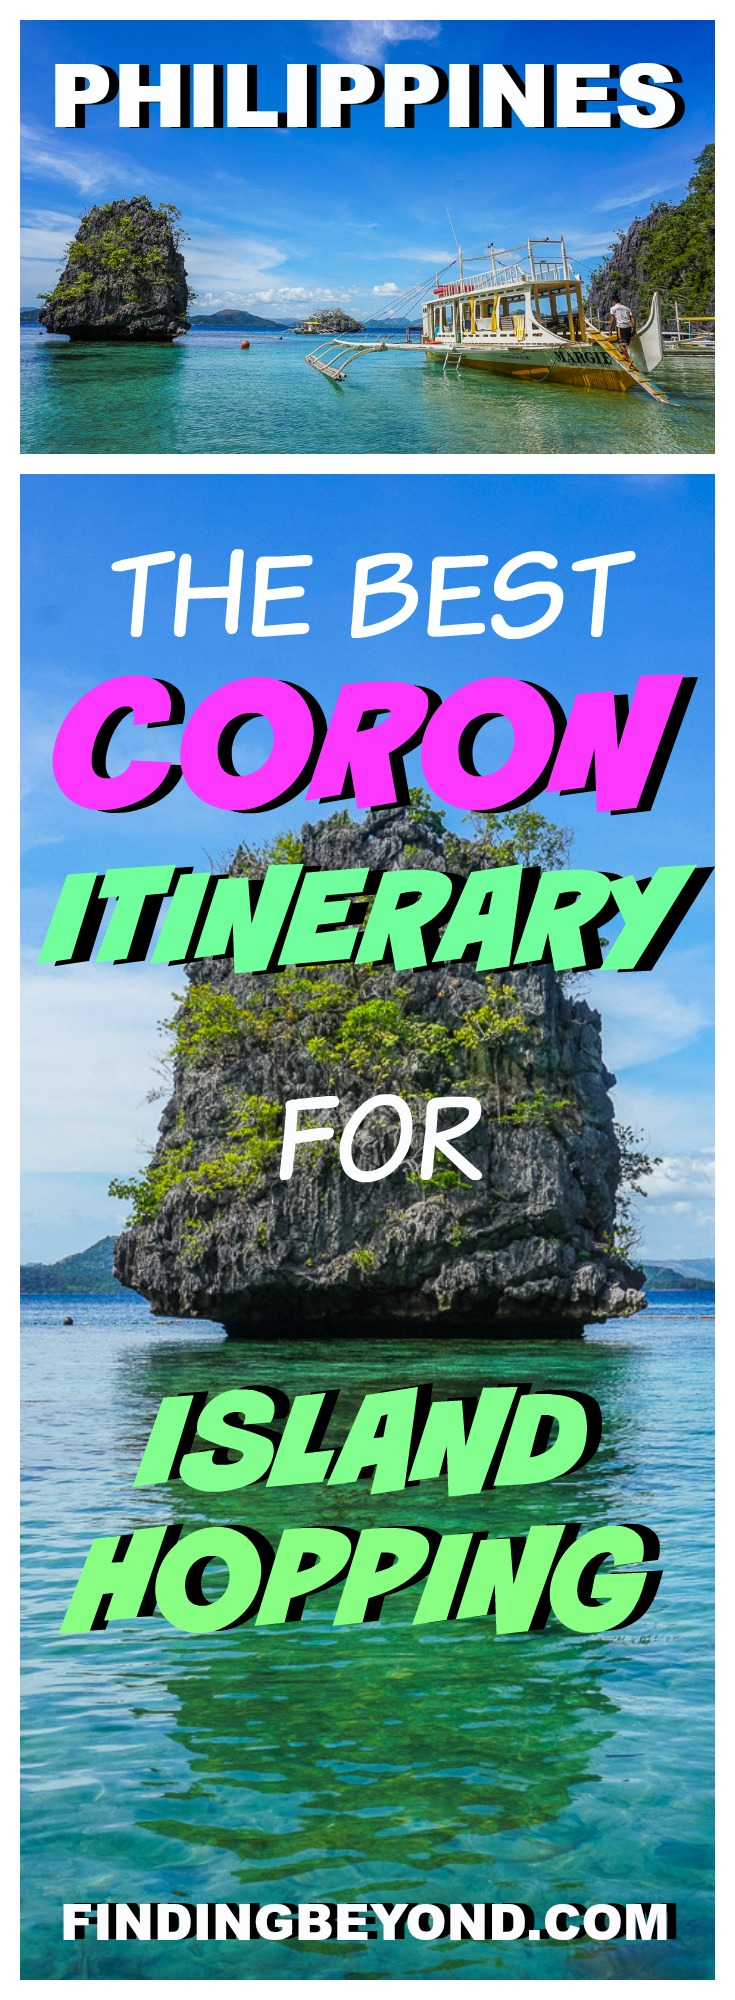 Check out our tried and tested best Coron itinerary which includes Coron Island hopping, awesome accommodation in Coron town and how to get there.